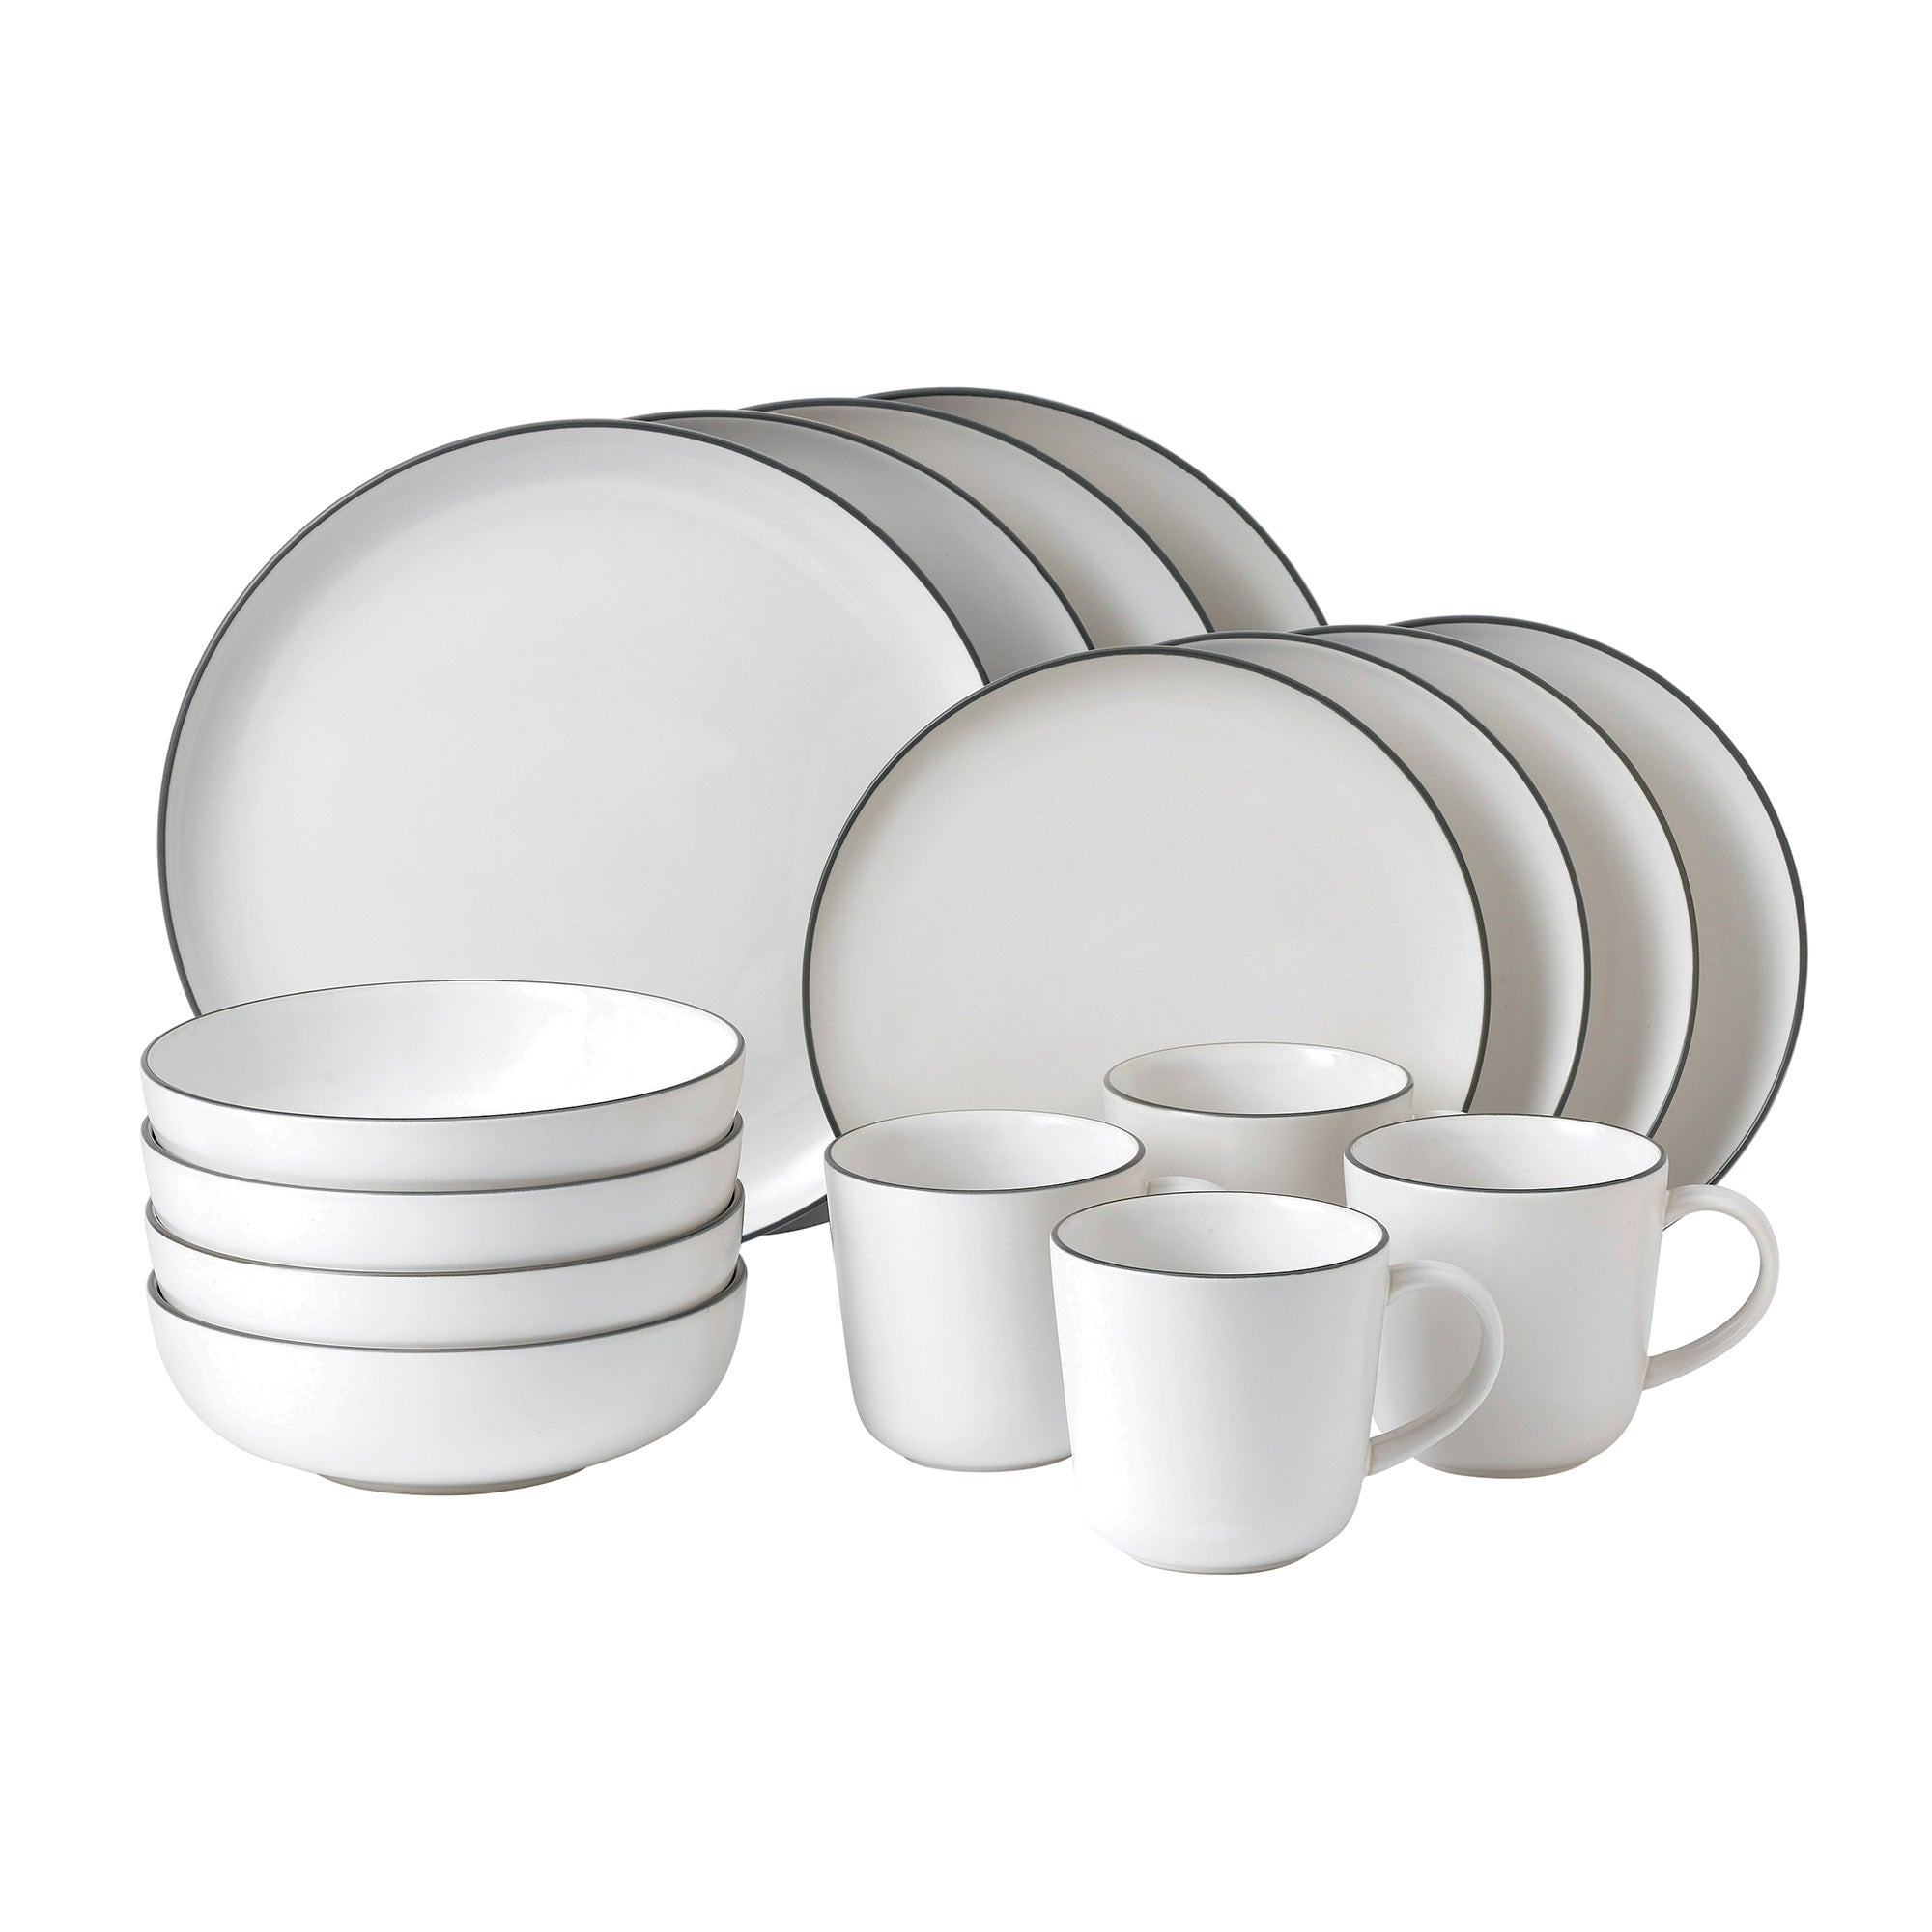 Gordon Ramsay White Bread Street Collection 16 Piece Dinner Set